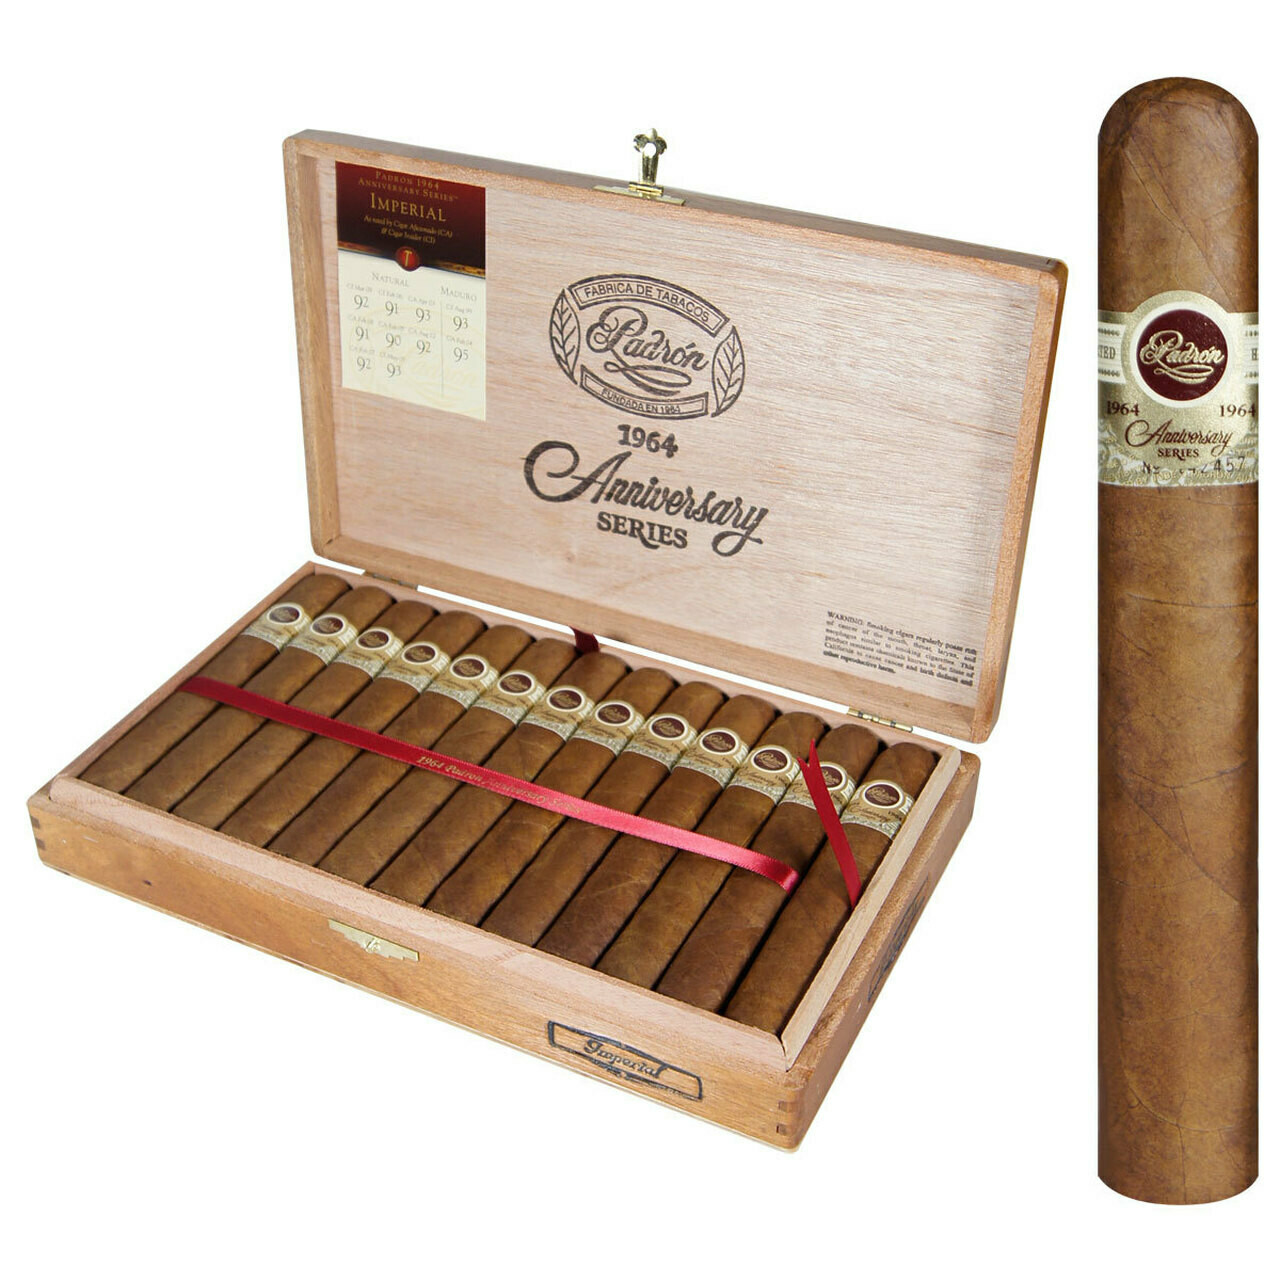 Padron 1964 Imperial Natural